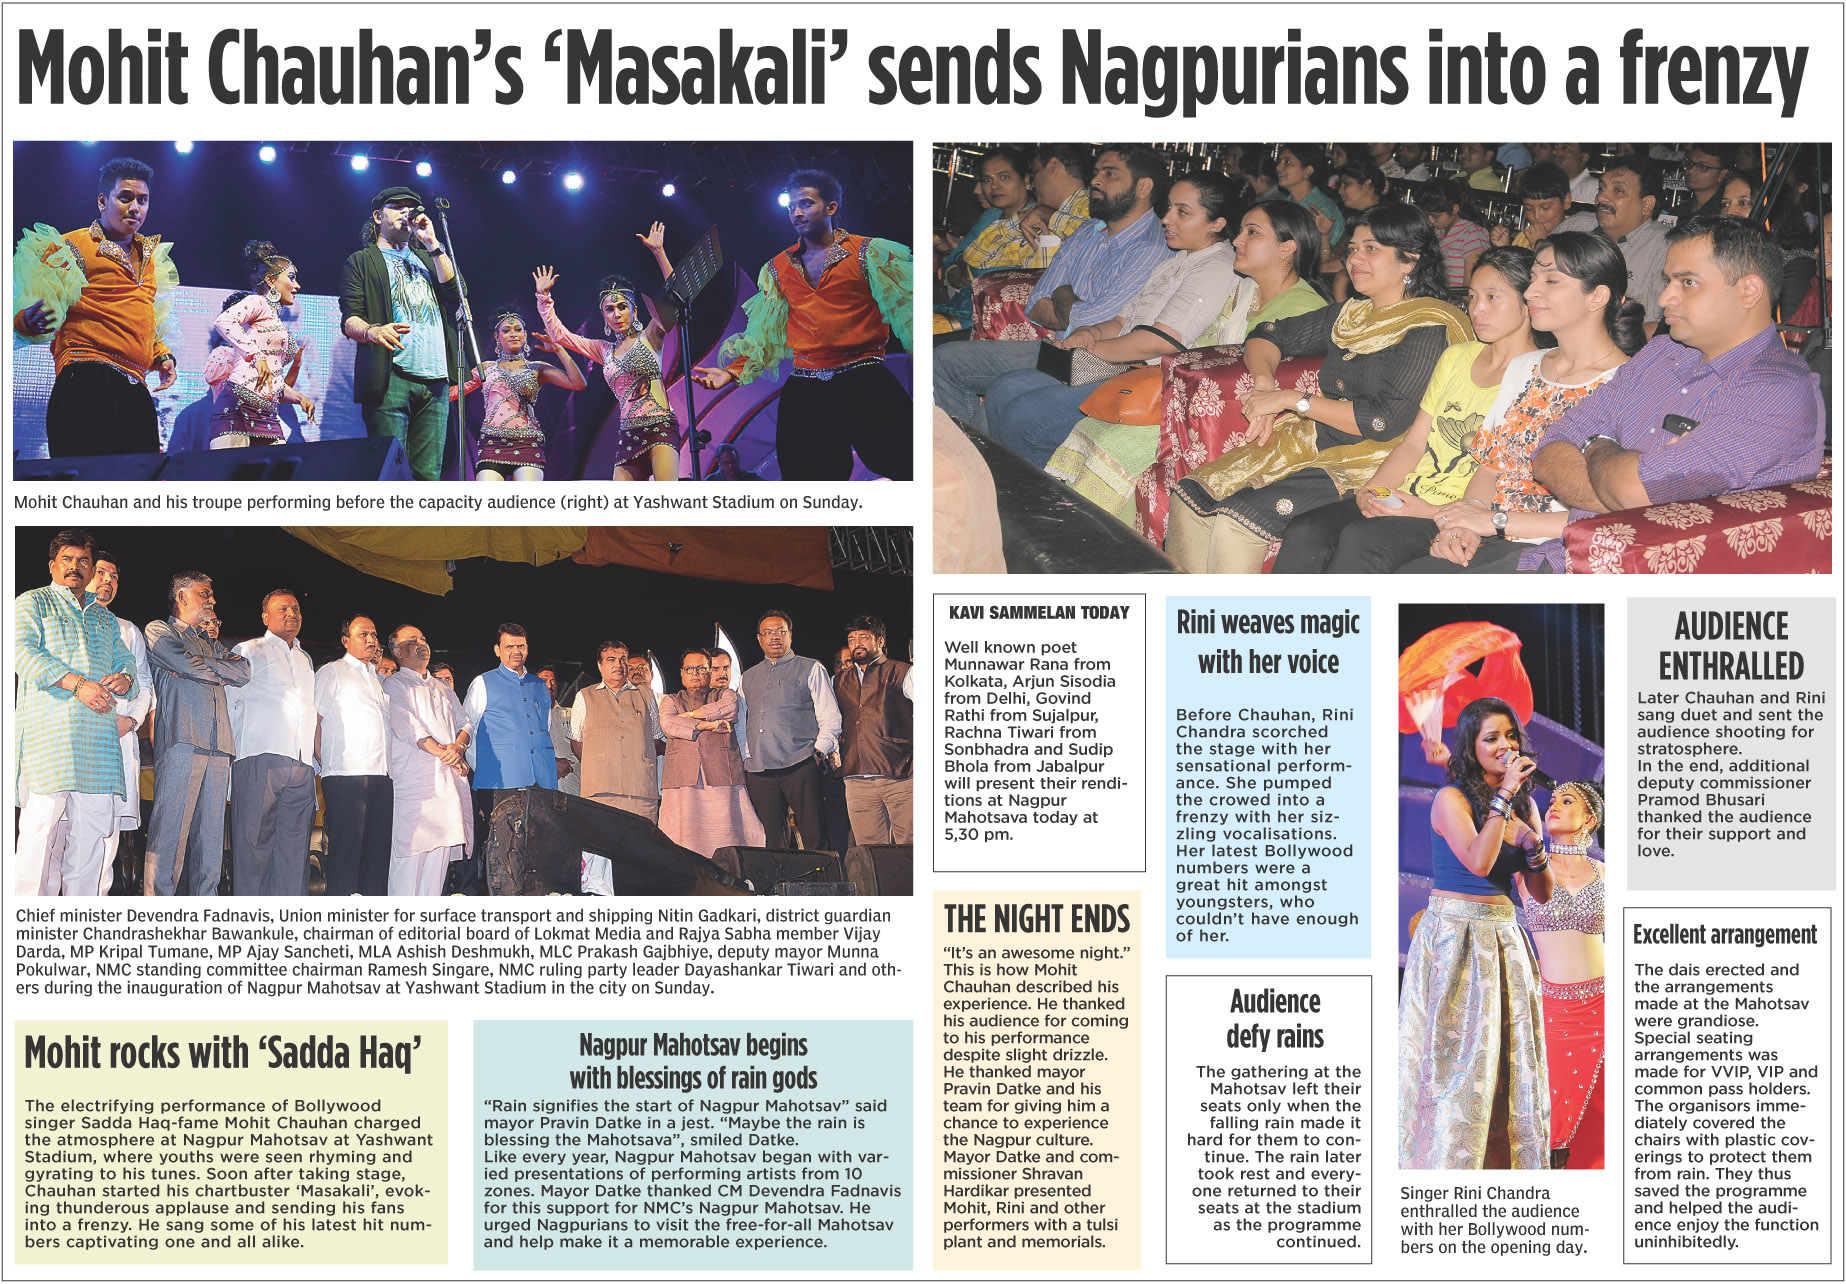 Mohit Chauhan's 'Masakali' sends Nagpurians into a frenzy